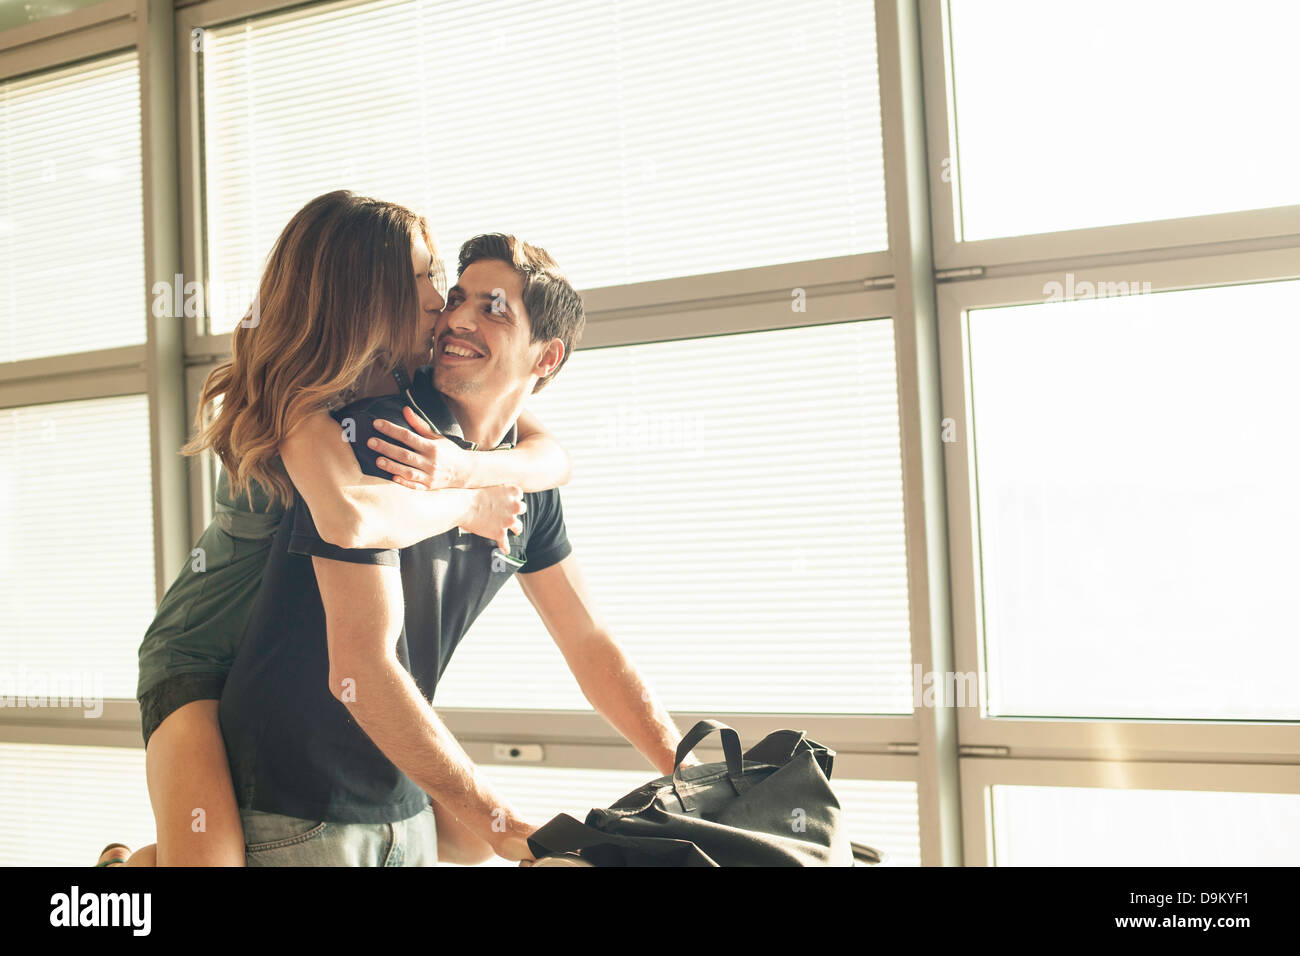 Young man giving woman piggy back in airport - Stock Image